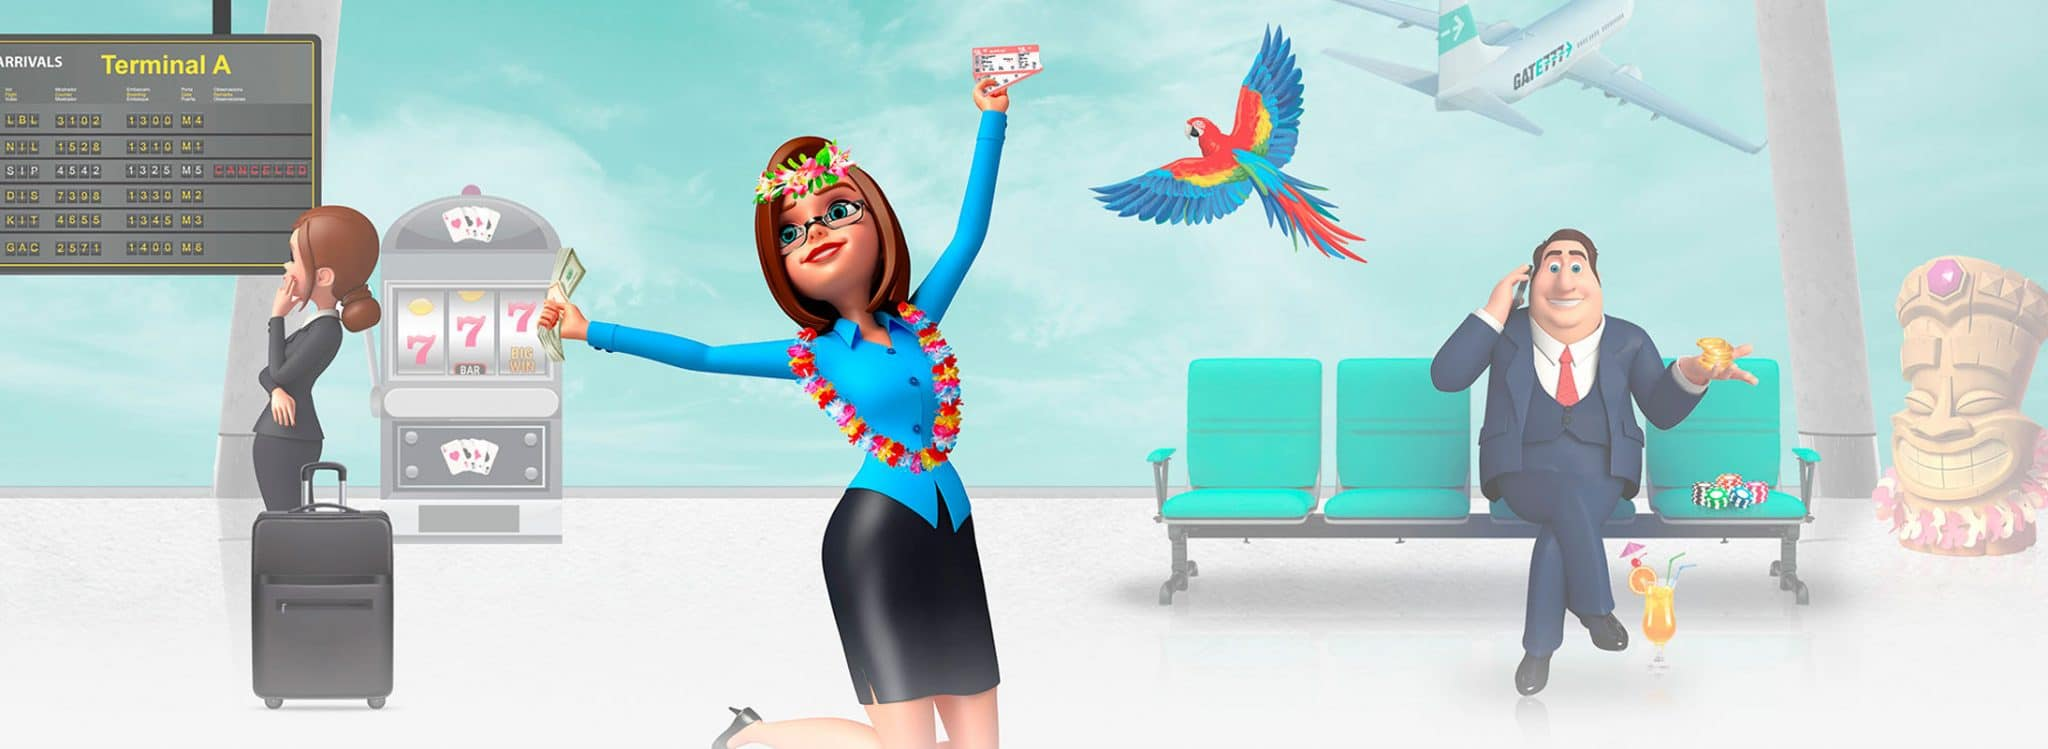 Jet Away To Promotions and Bonuses At Gate777 Casino Today element01 - CasinoTop